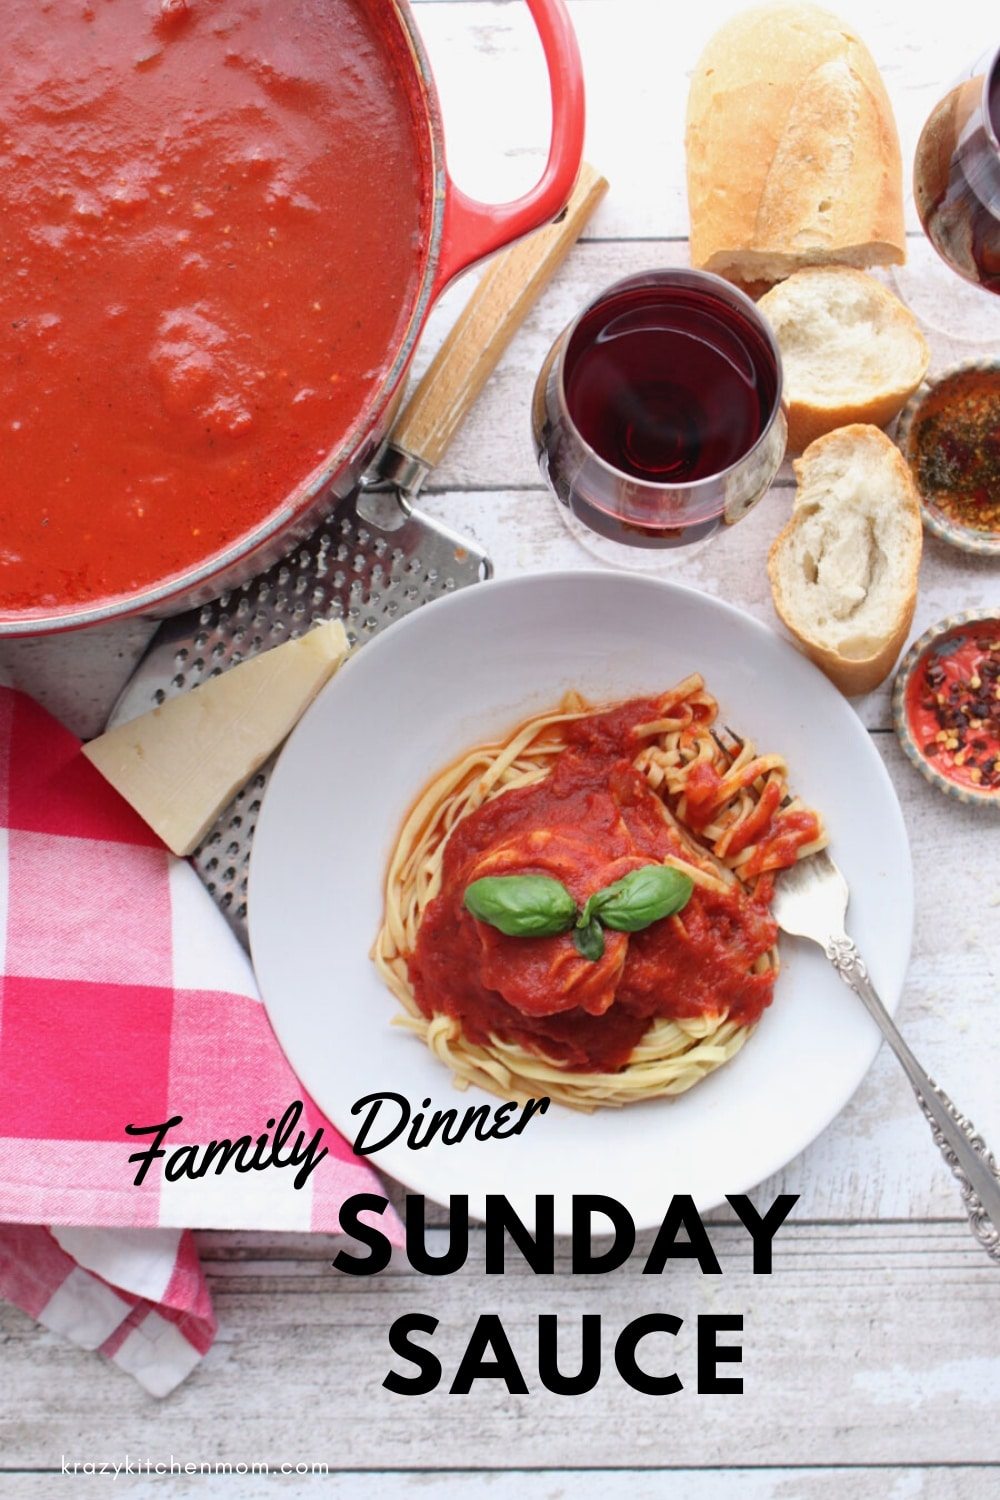 Sunday Sauce Spaghetti Sauce is cooked low and slow for a deep delicious sauce. via @krazykitchenmom